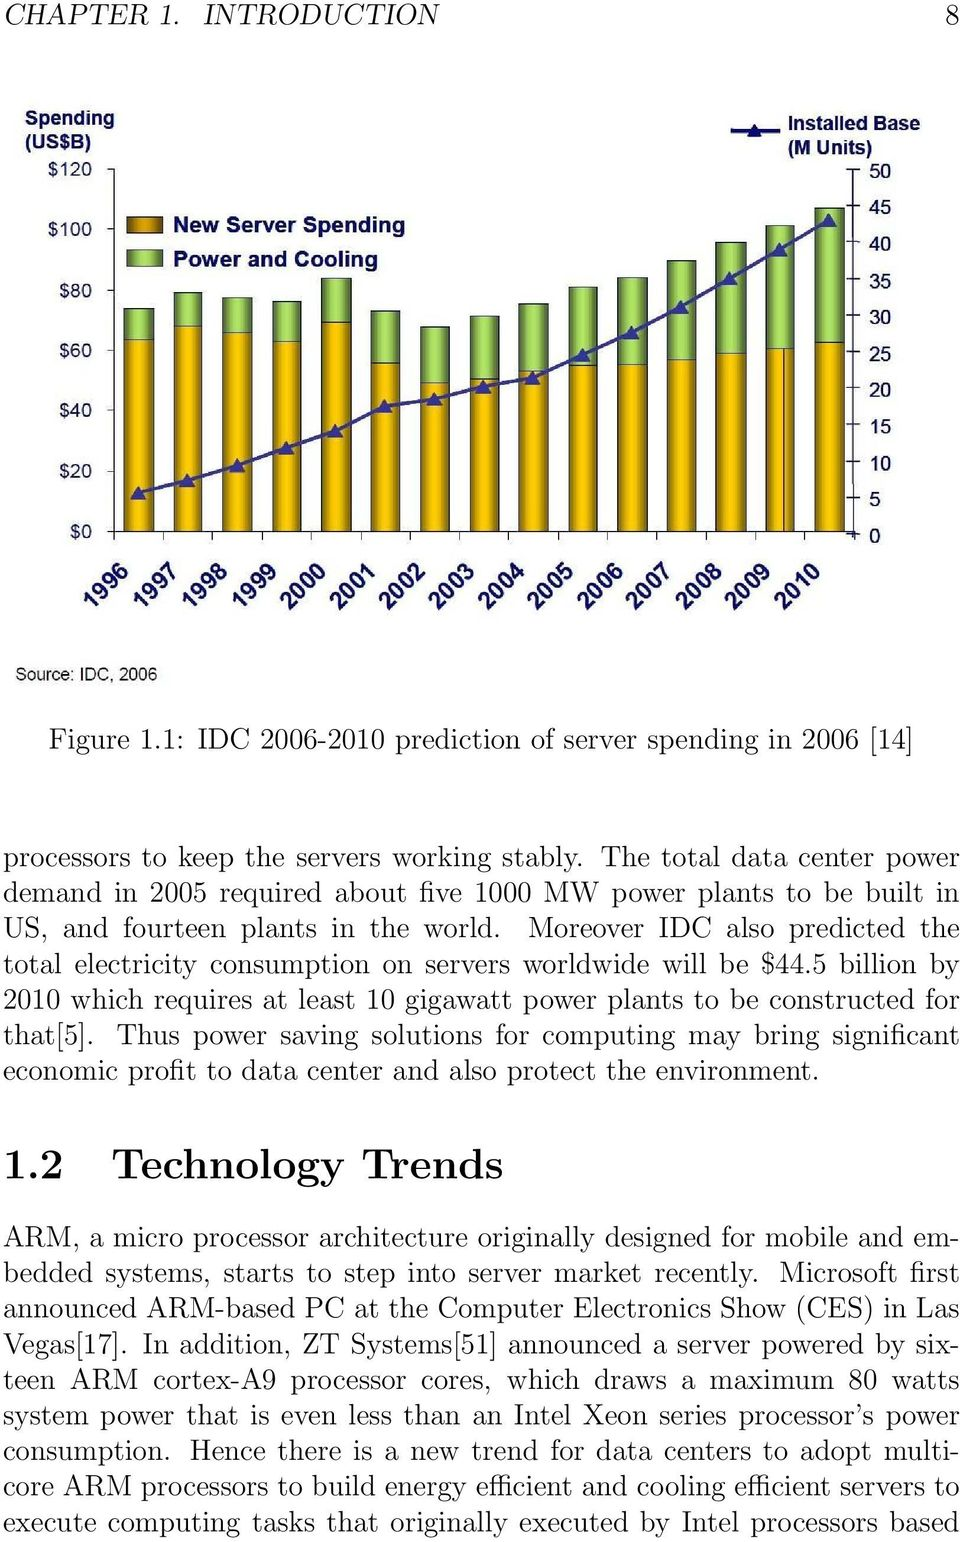 Moreover IDC also predicted the total electricity consumption on servers worldwide will be $44.5 billion by 2010 which requires at least 10 gigawatt power plants to be constructed for that[5].